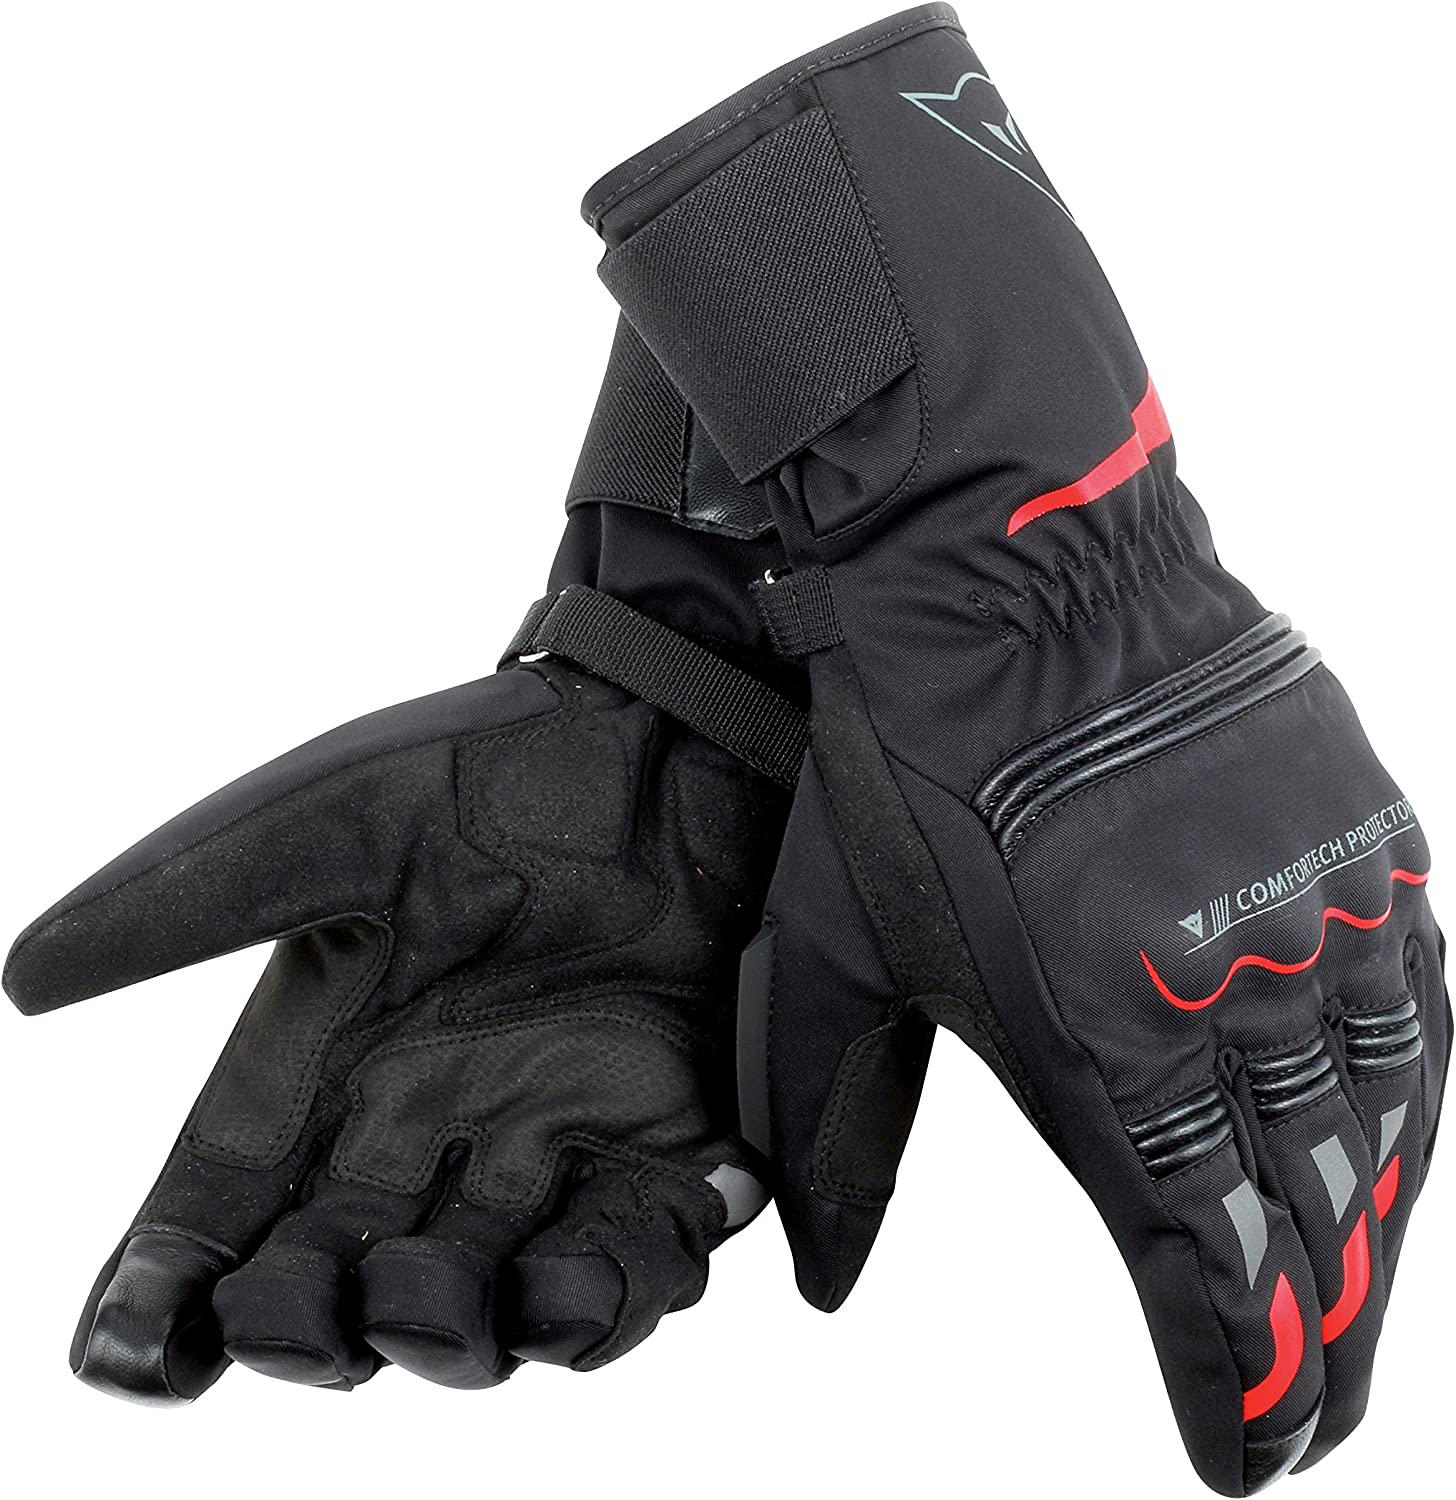 Mejores Guantes Dainese invierno